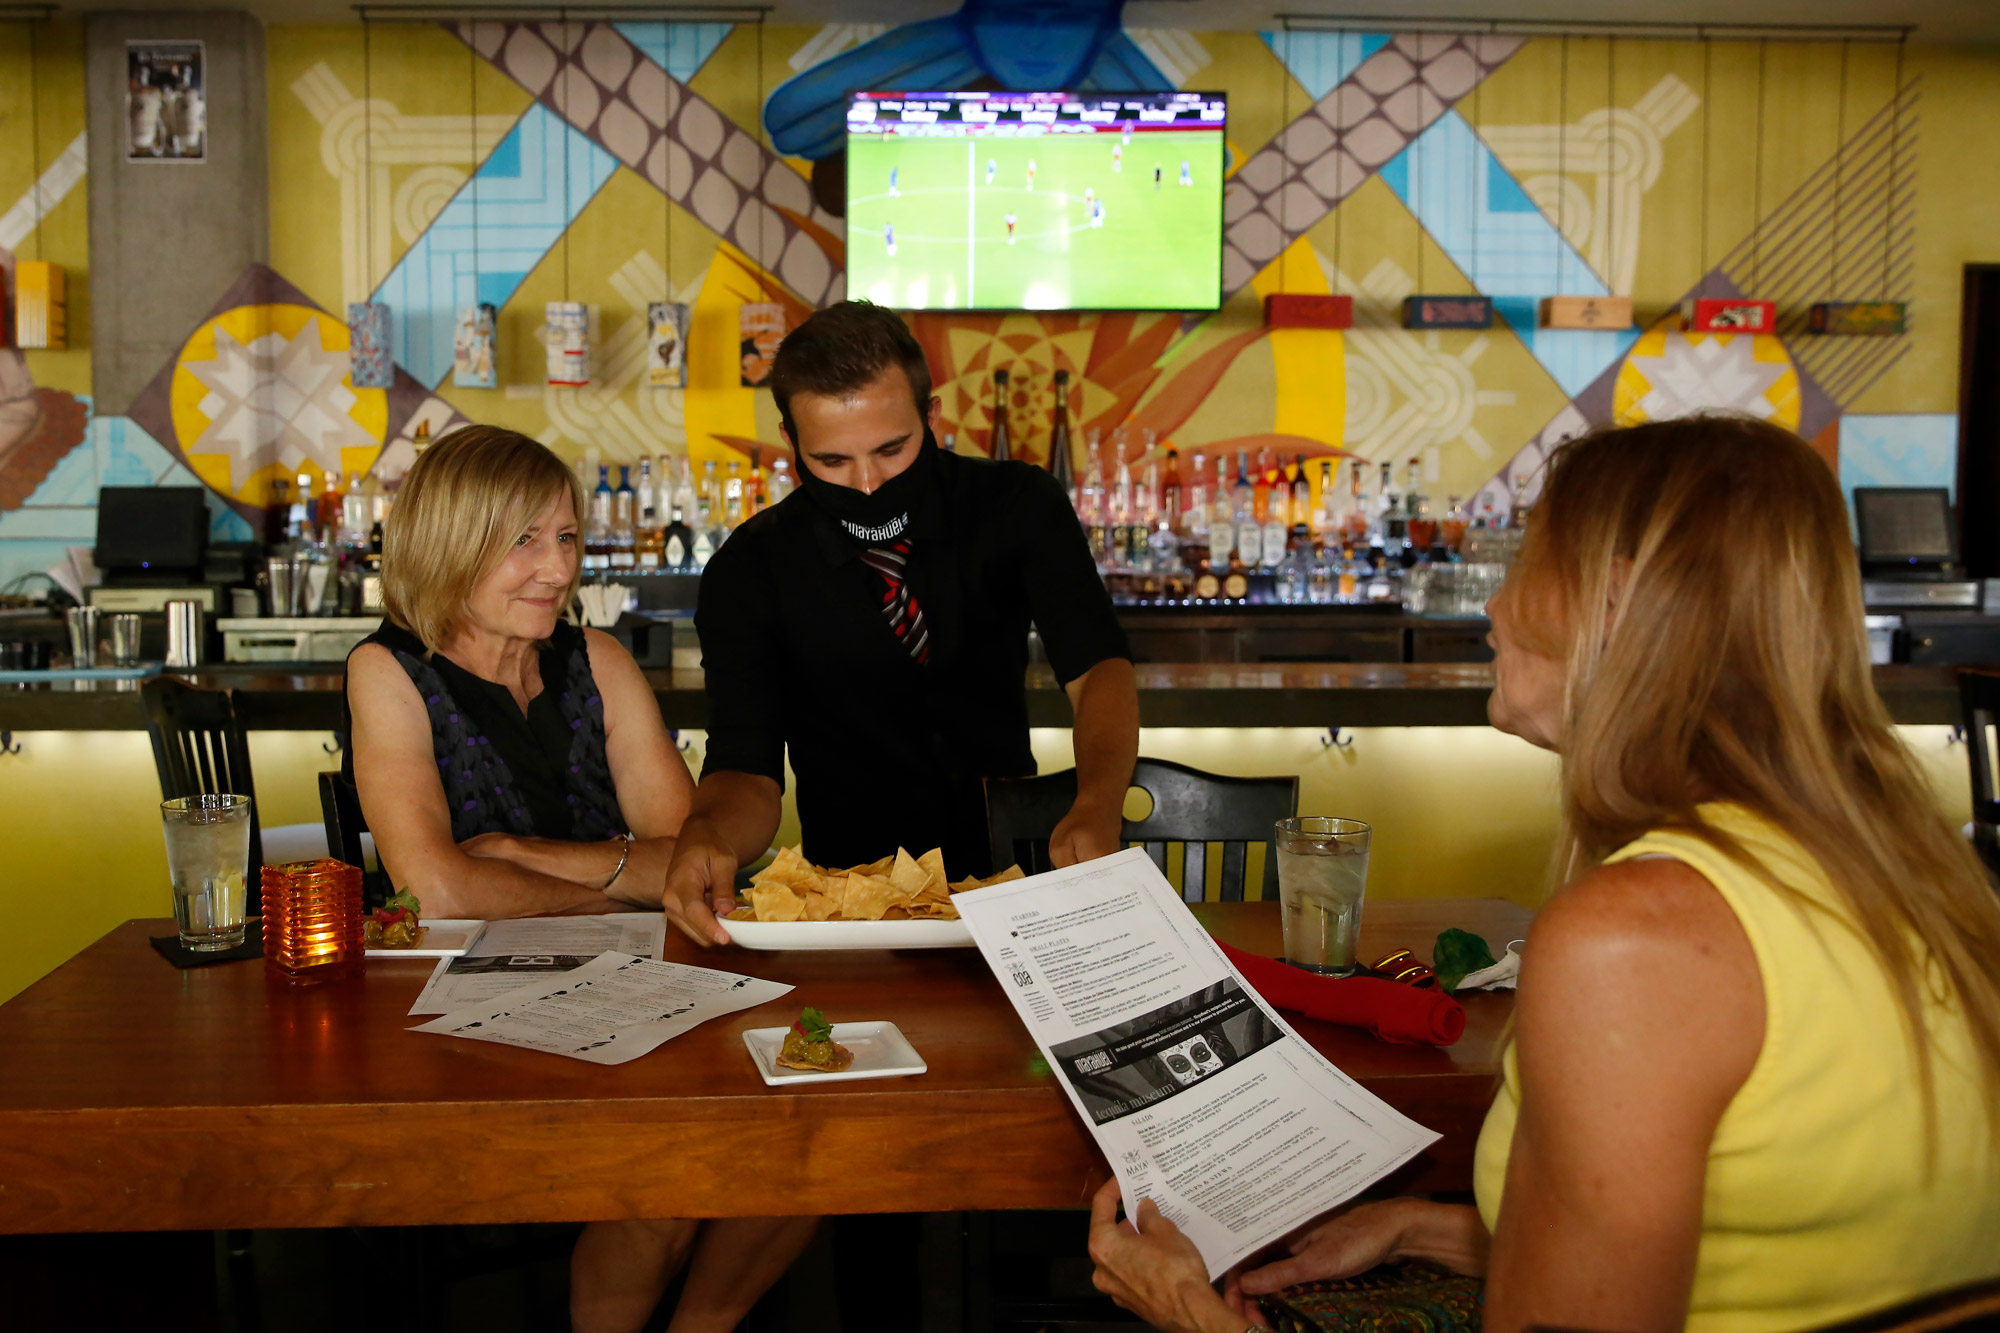 Jorge Hernandez serves a plate of chips to customers at the Tequila Museo Mayahuel restaurant in Sacramento, California, on July 1.